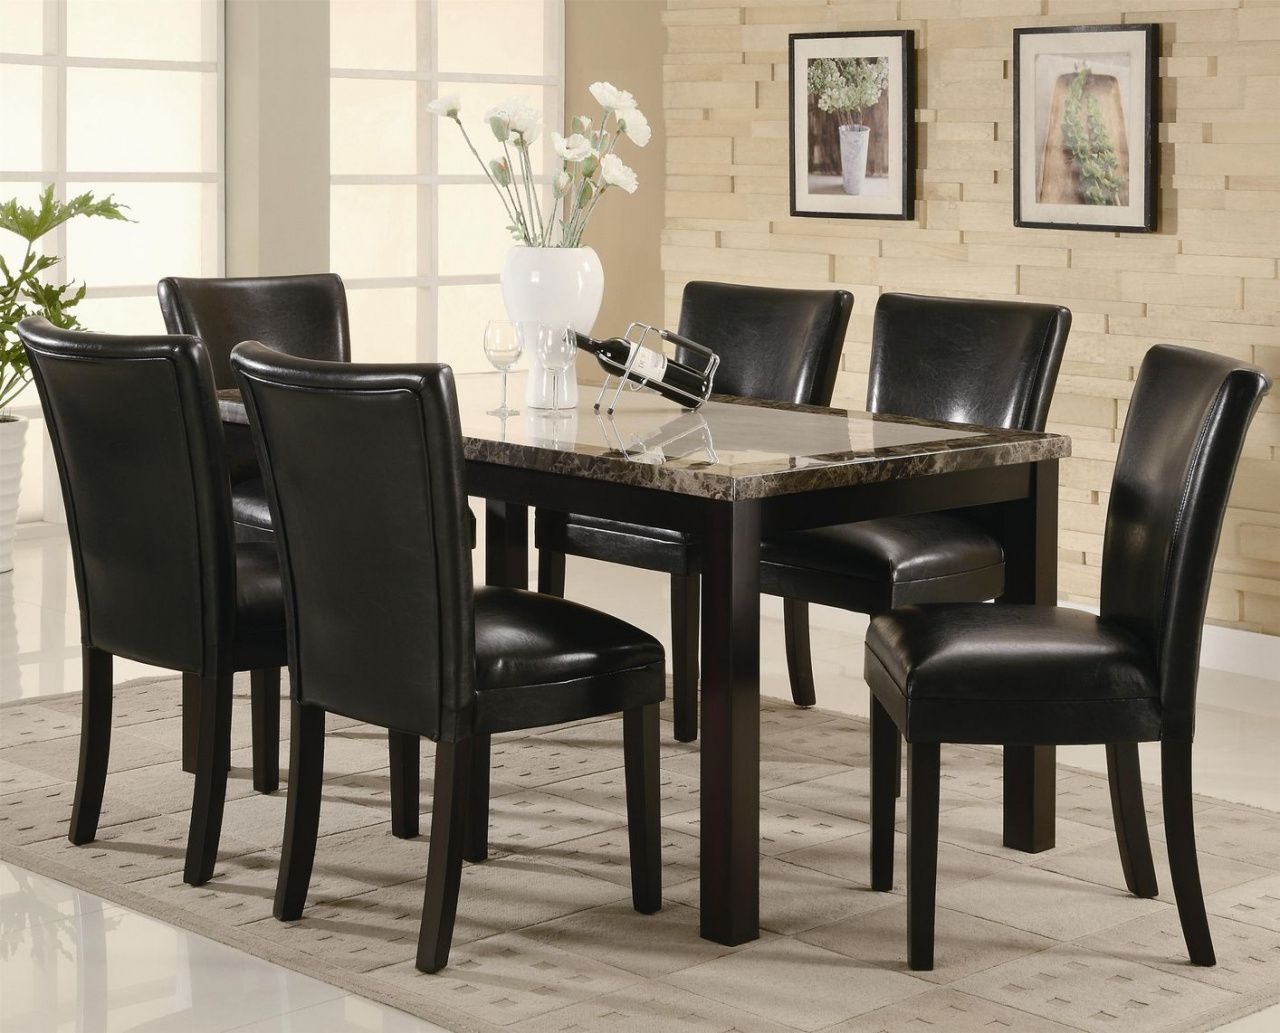 Black Dining Table Set Ashley Furniture Home Office Check More At Http